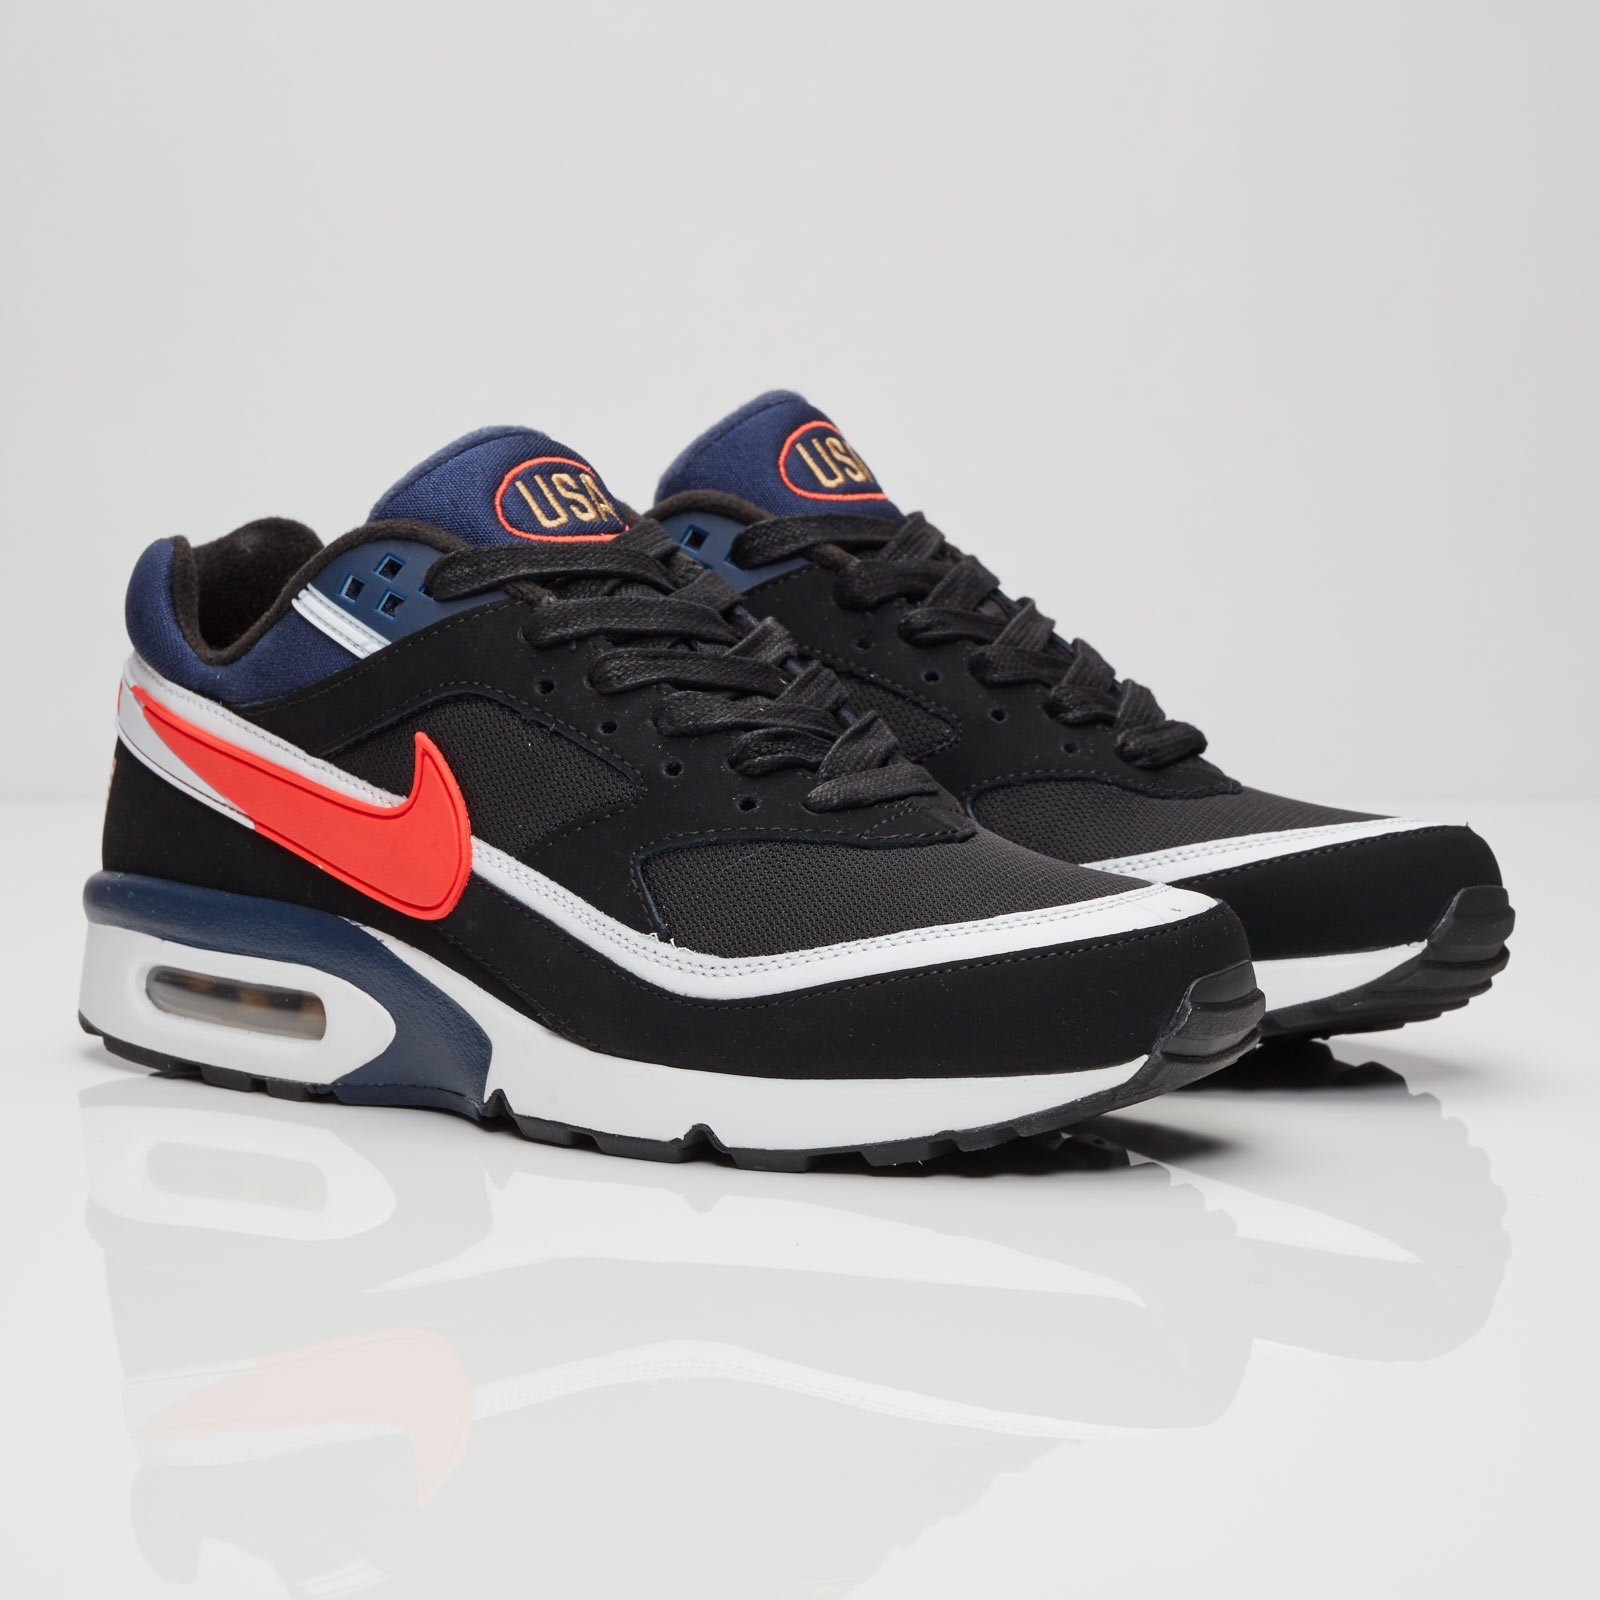 new product a0e13 ae74b Nike Air Max BW Premium